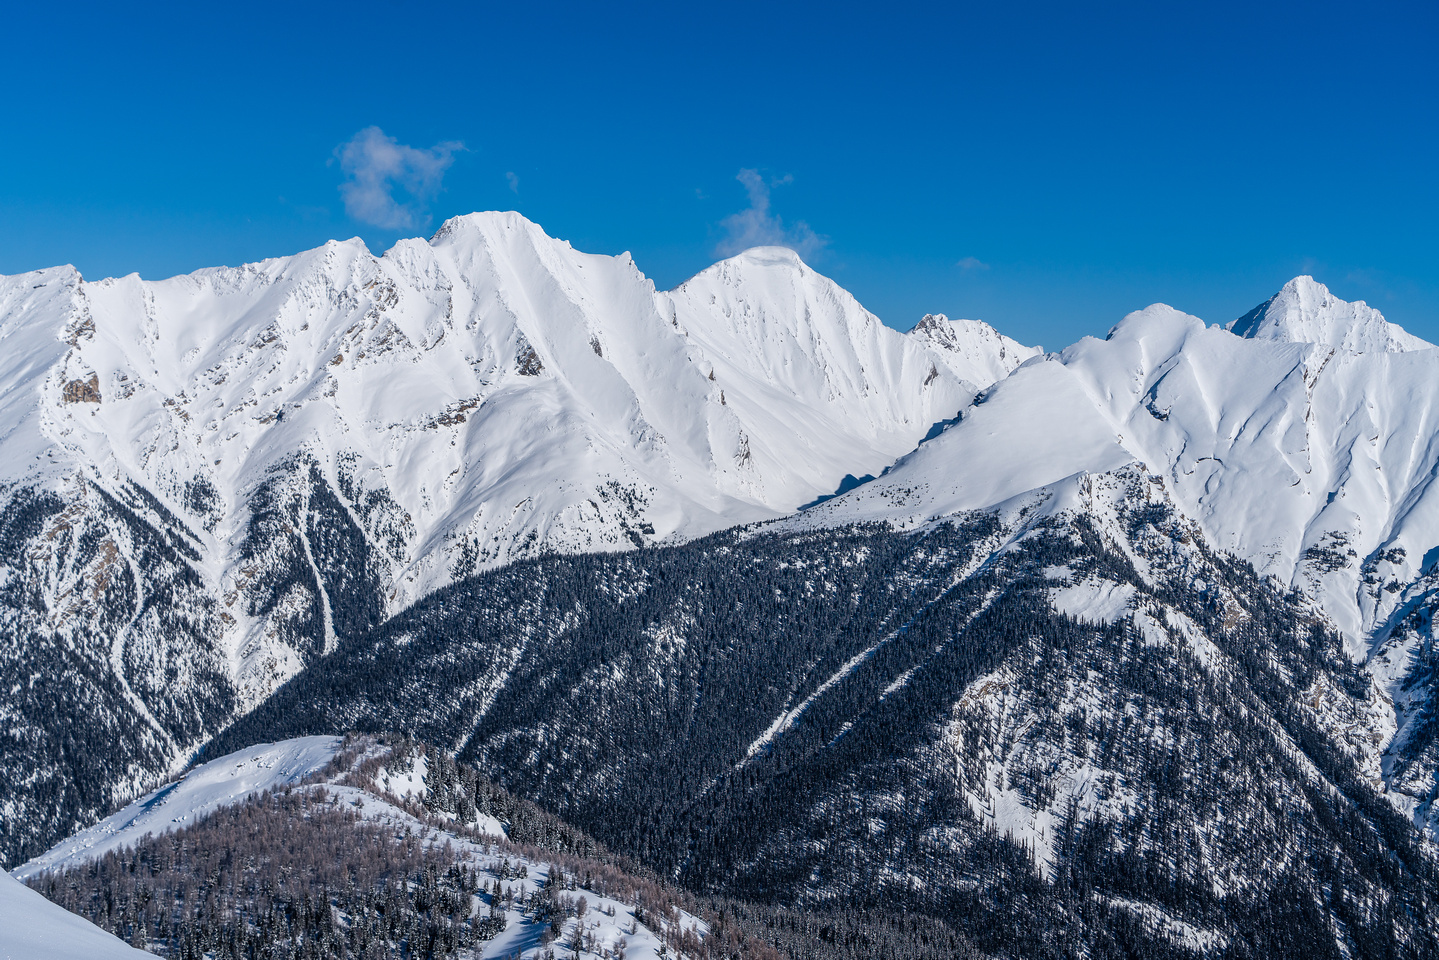 More views over unnamed peaks along the Sawback Range with Block Mountain almost hidden.